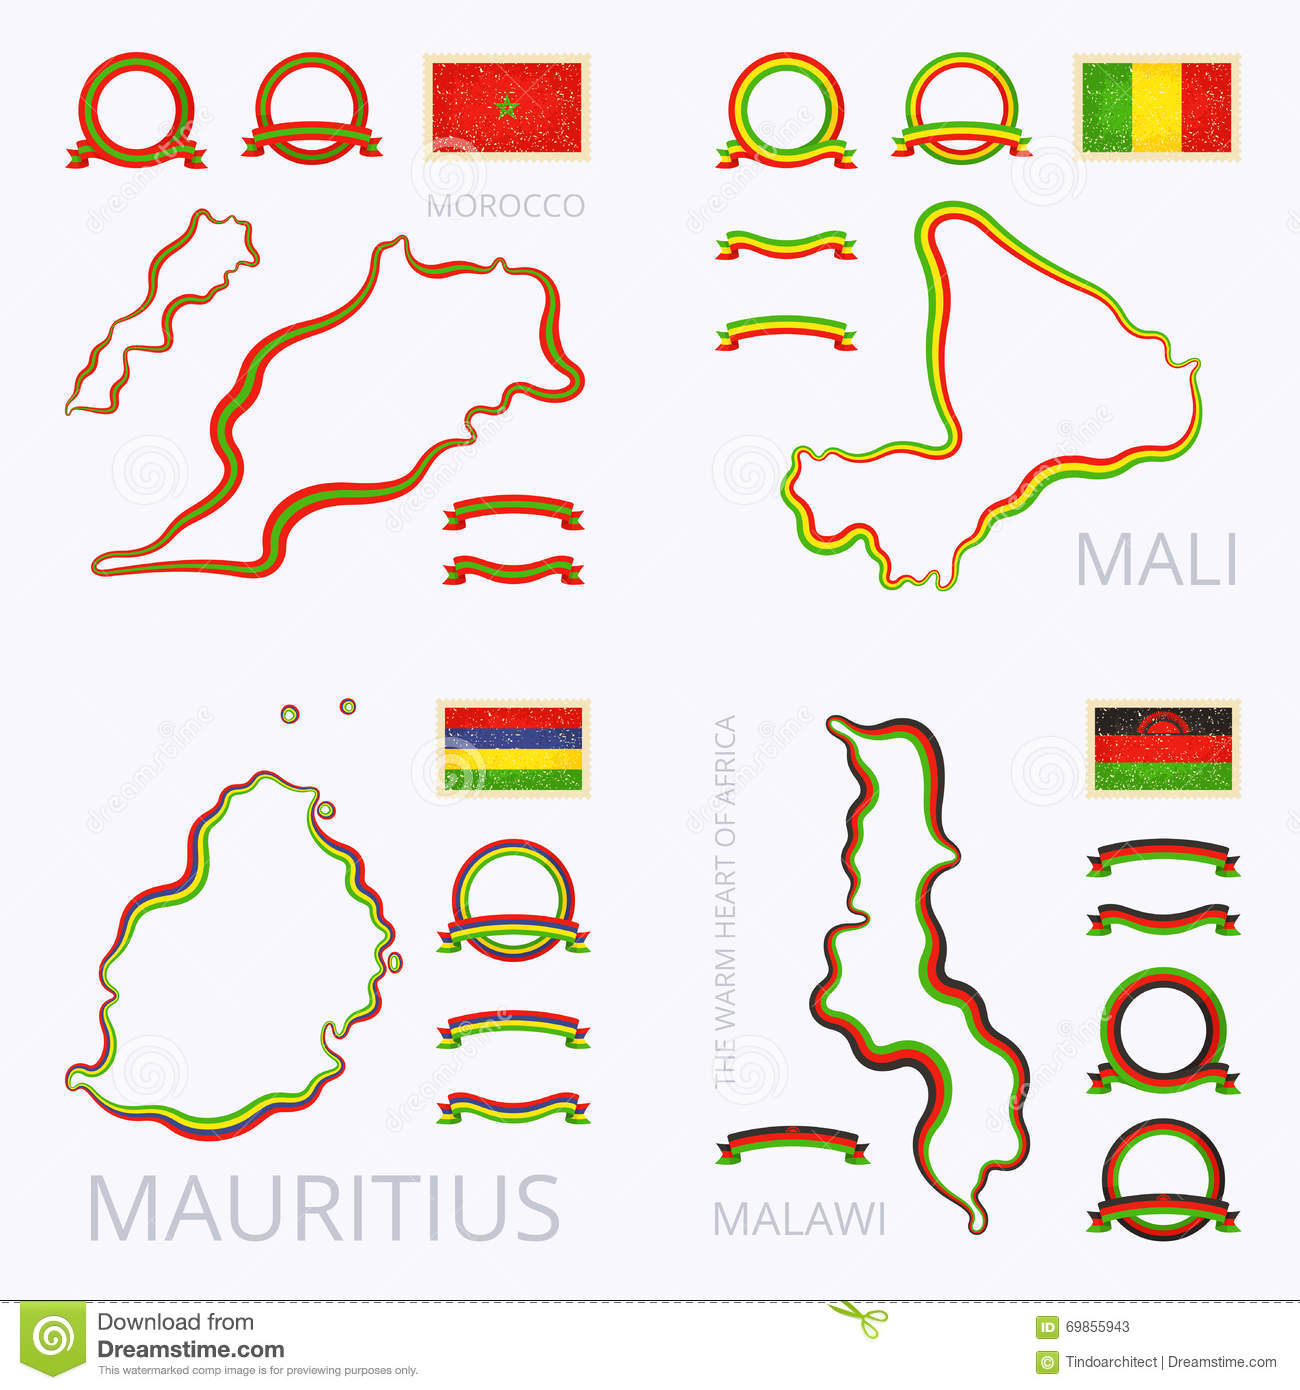 Colors Of Morocco, Mali, Mauritius And Malawi Stock Vector ...